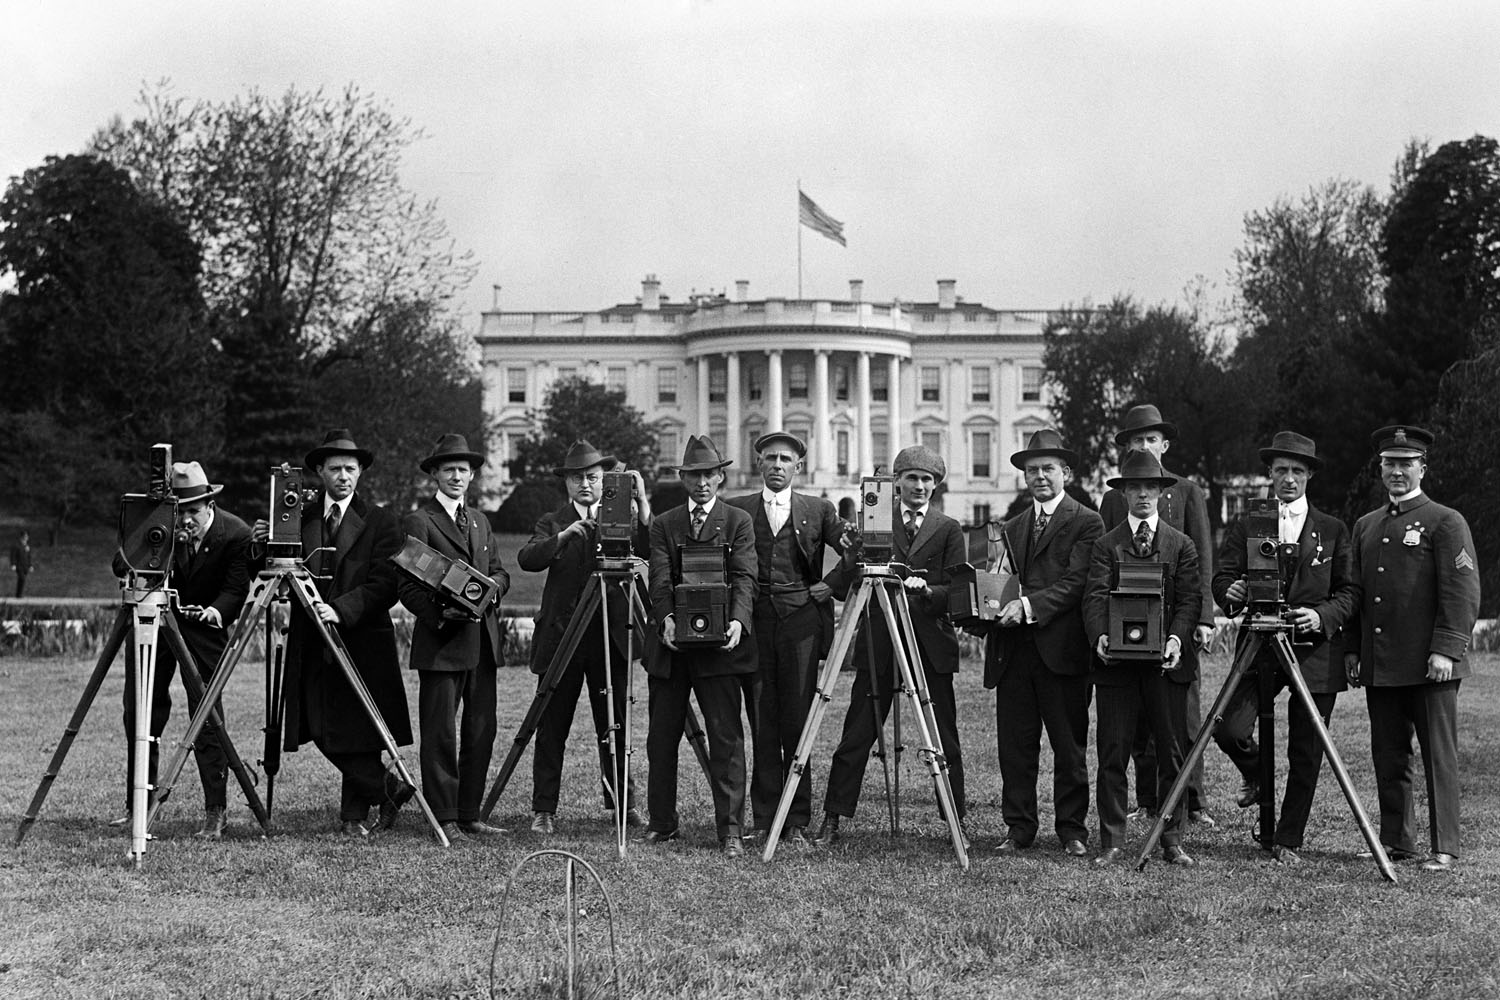 Photographers pose at the White House during the Woodrow Wilson administration in 1918.